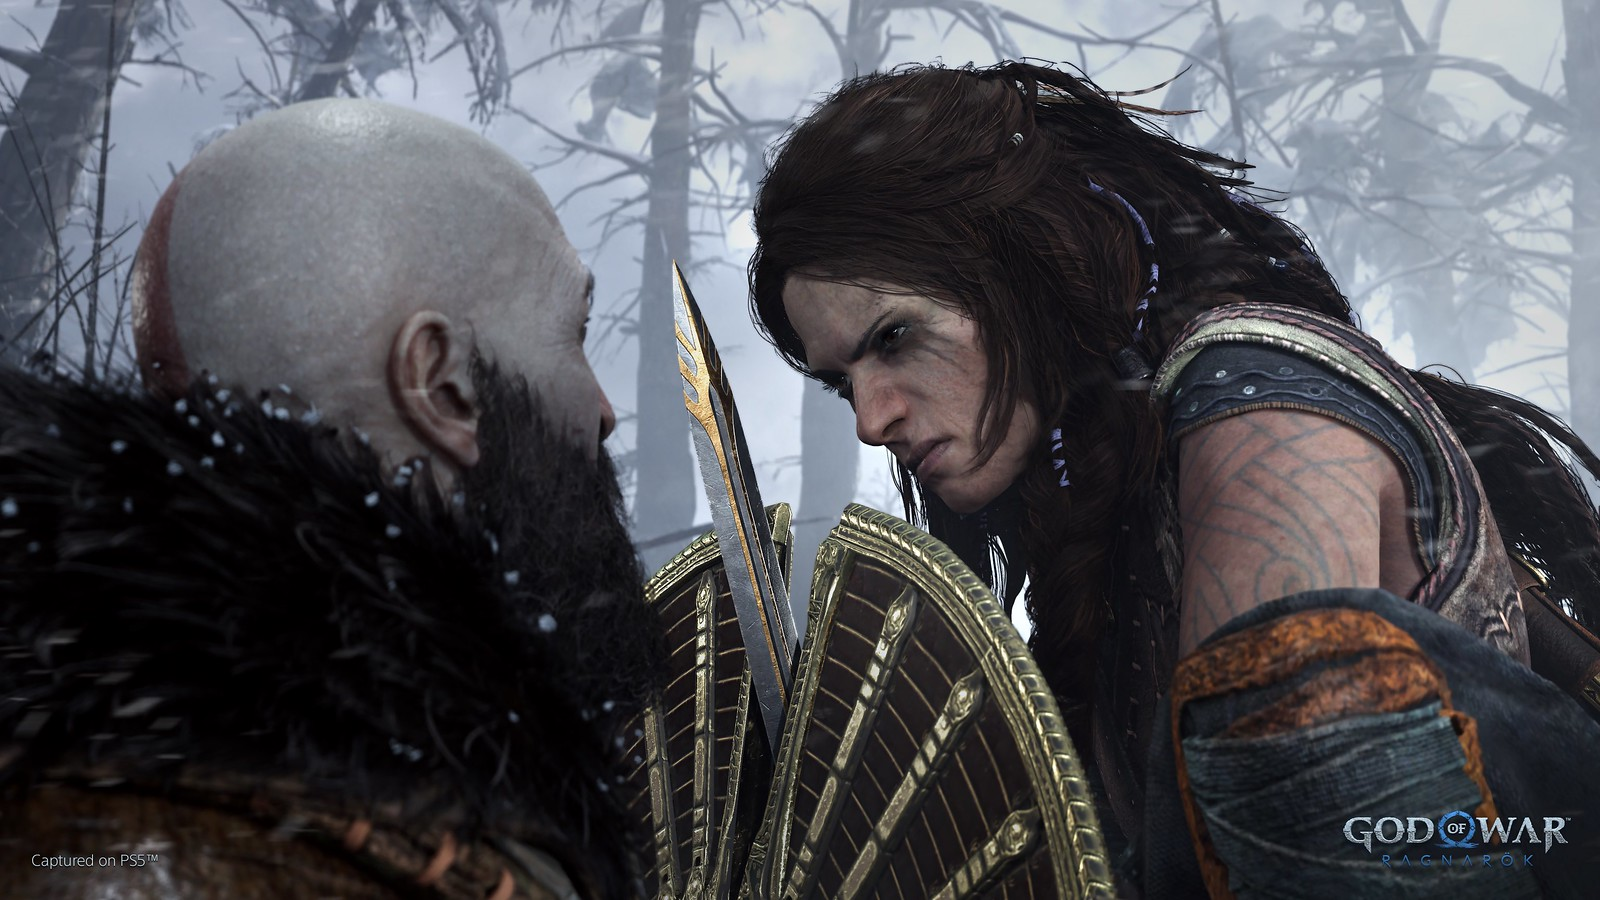 God of War Ragnarok Is a Next-Gen Video Game Everybody Wants to Play